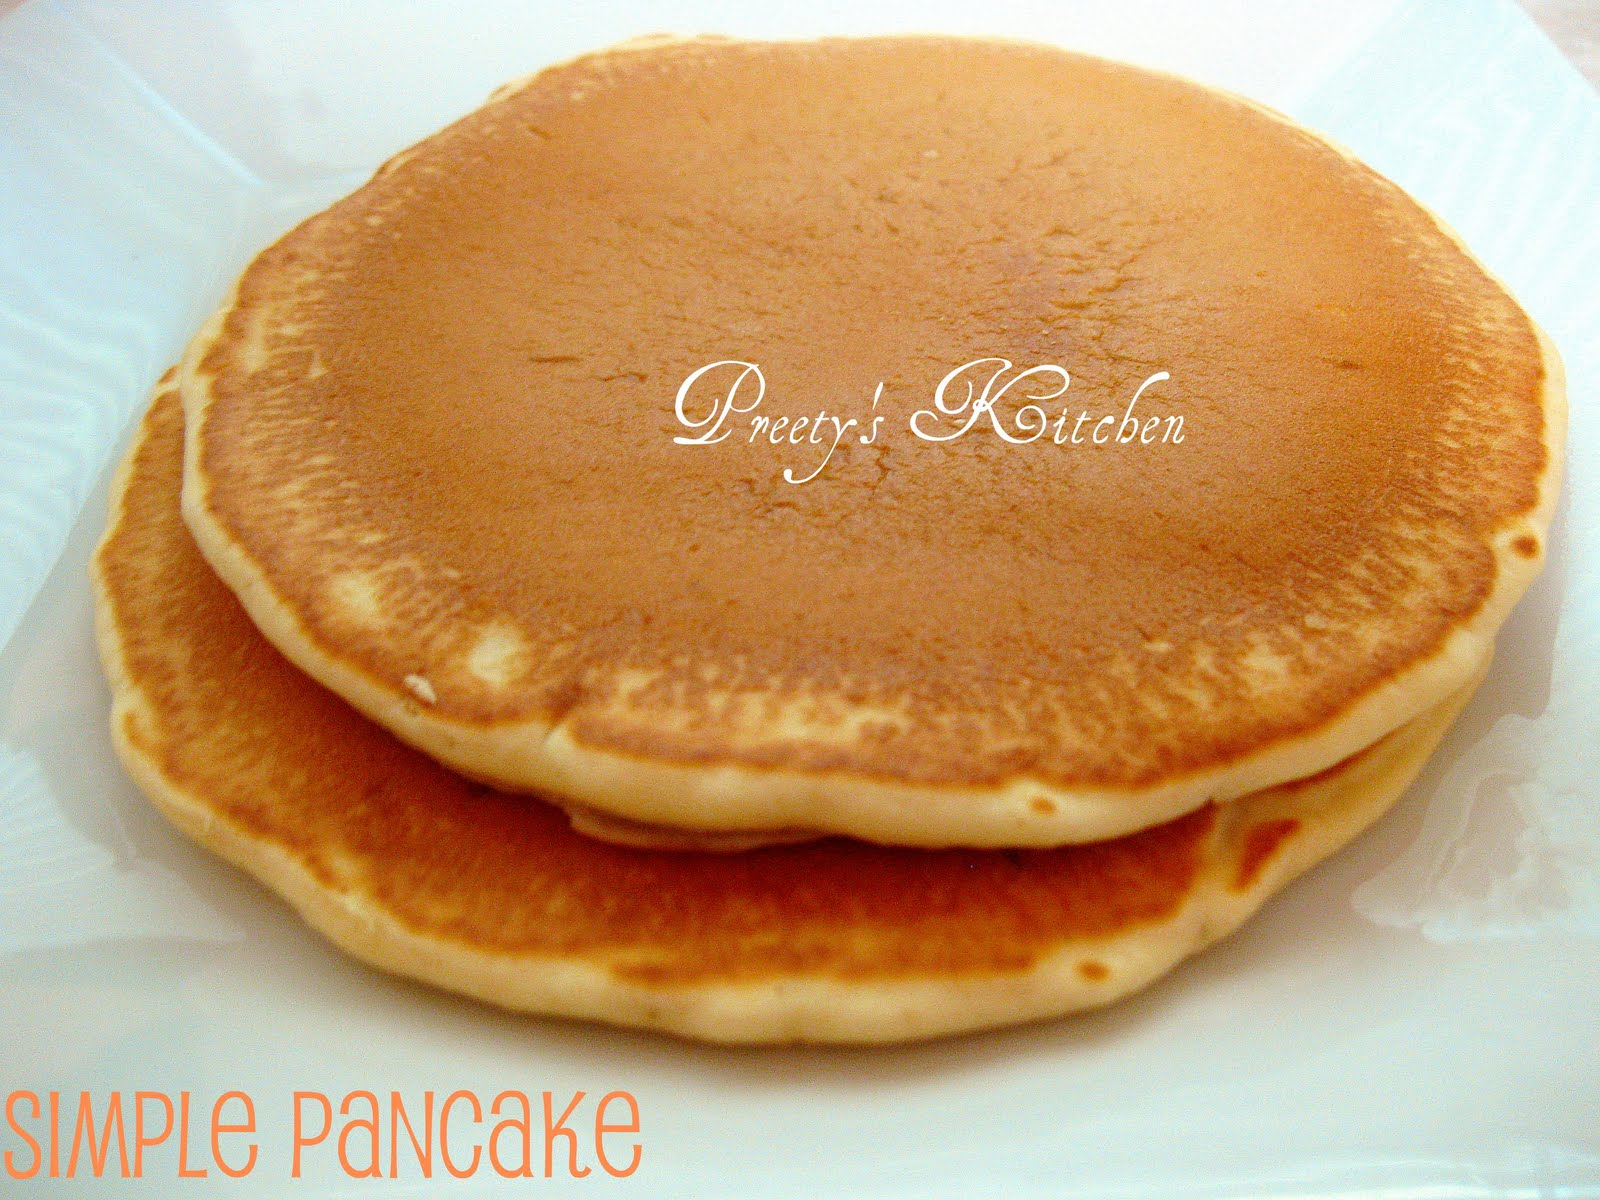 Preety s Kitchen: Simple Pancake Recipe